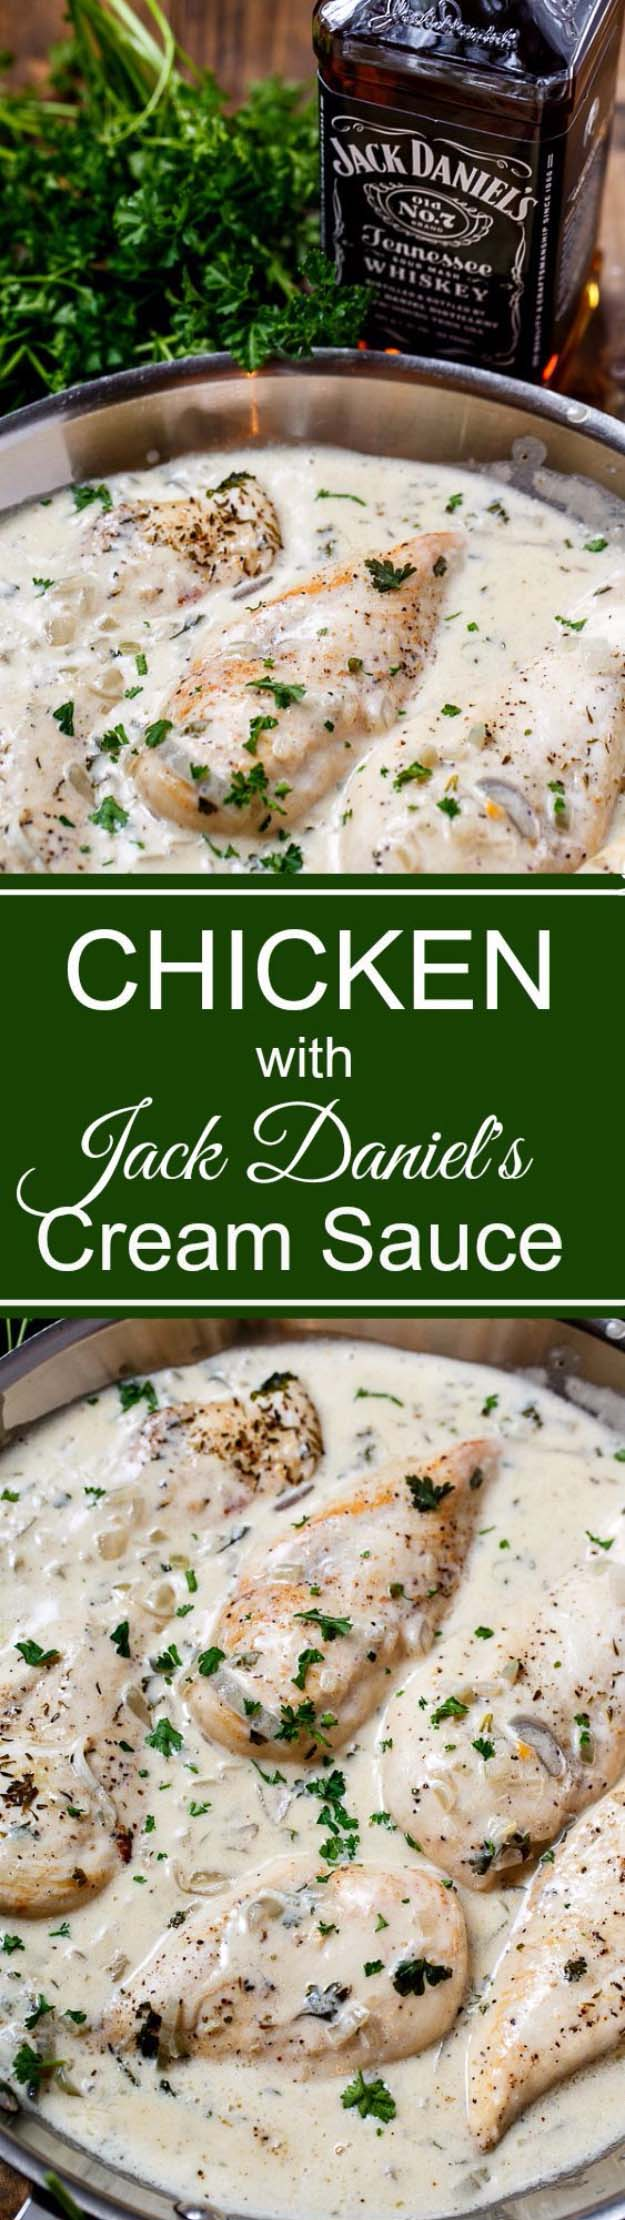 Fun DIY Ideas Made With Jack Daniels - Recipes, Projects and Crafts With The Bottle, Everything From Lamps and Decorations to Fudge and Cupcakes | Chicken in Jack Daniels Cream Sauce #diy #jackdaniels #recipes #crafts